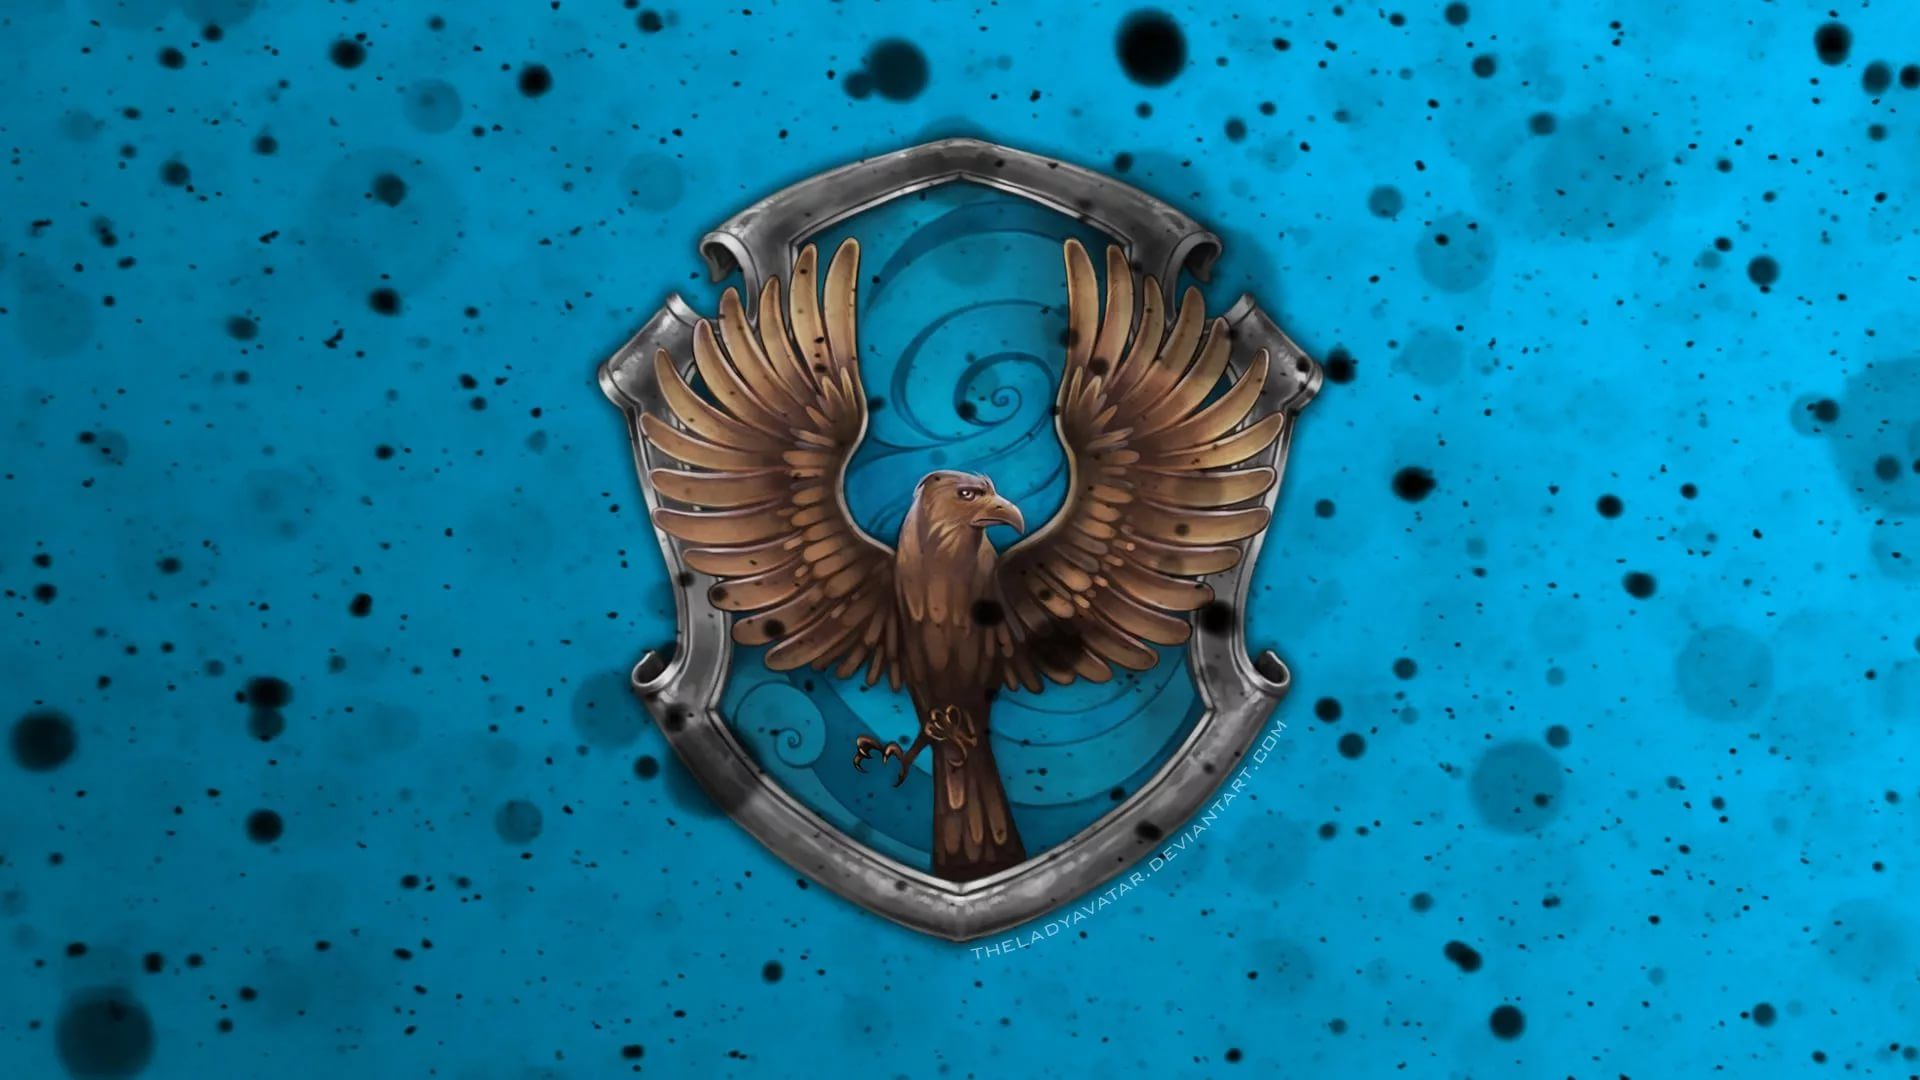 Ravenclaw Free Wallpaper and Background